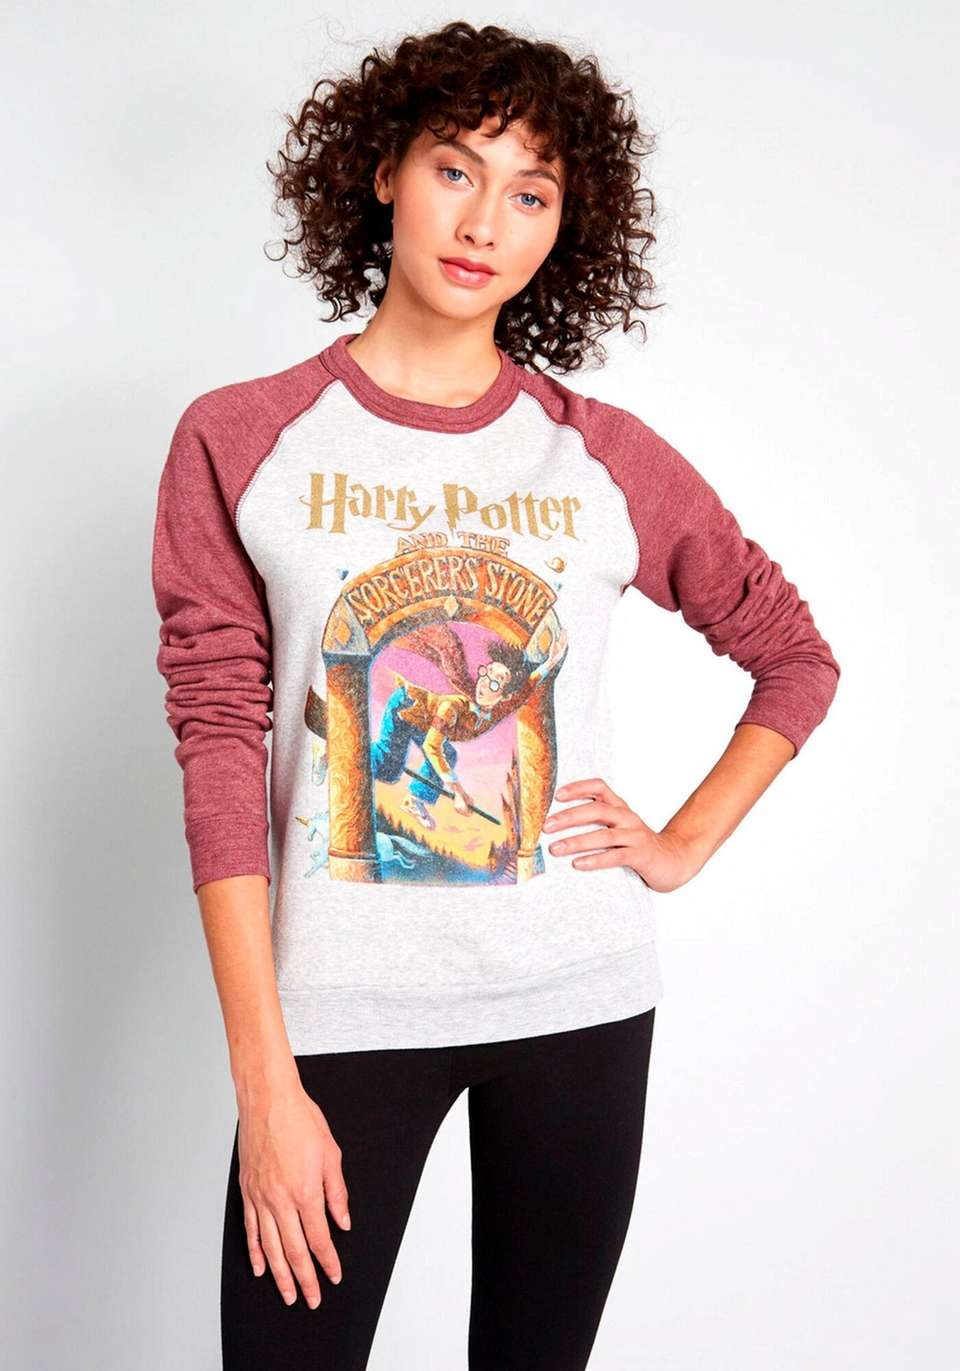 This Hogwarts fleece pullover will work its magic